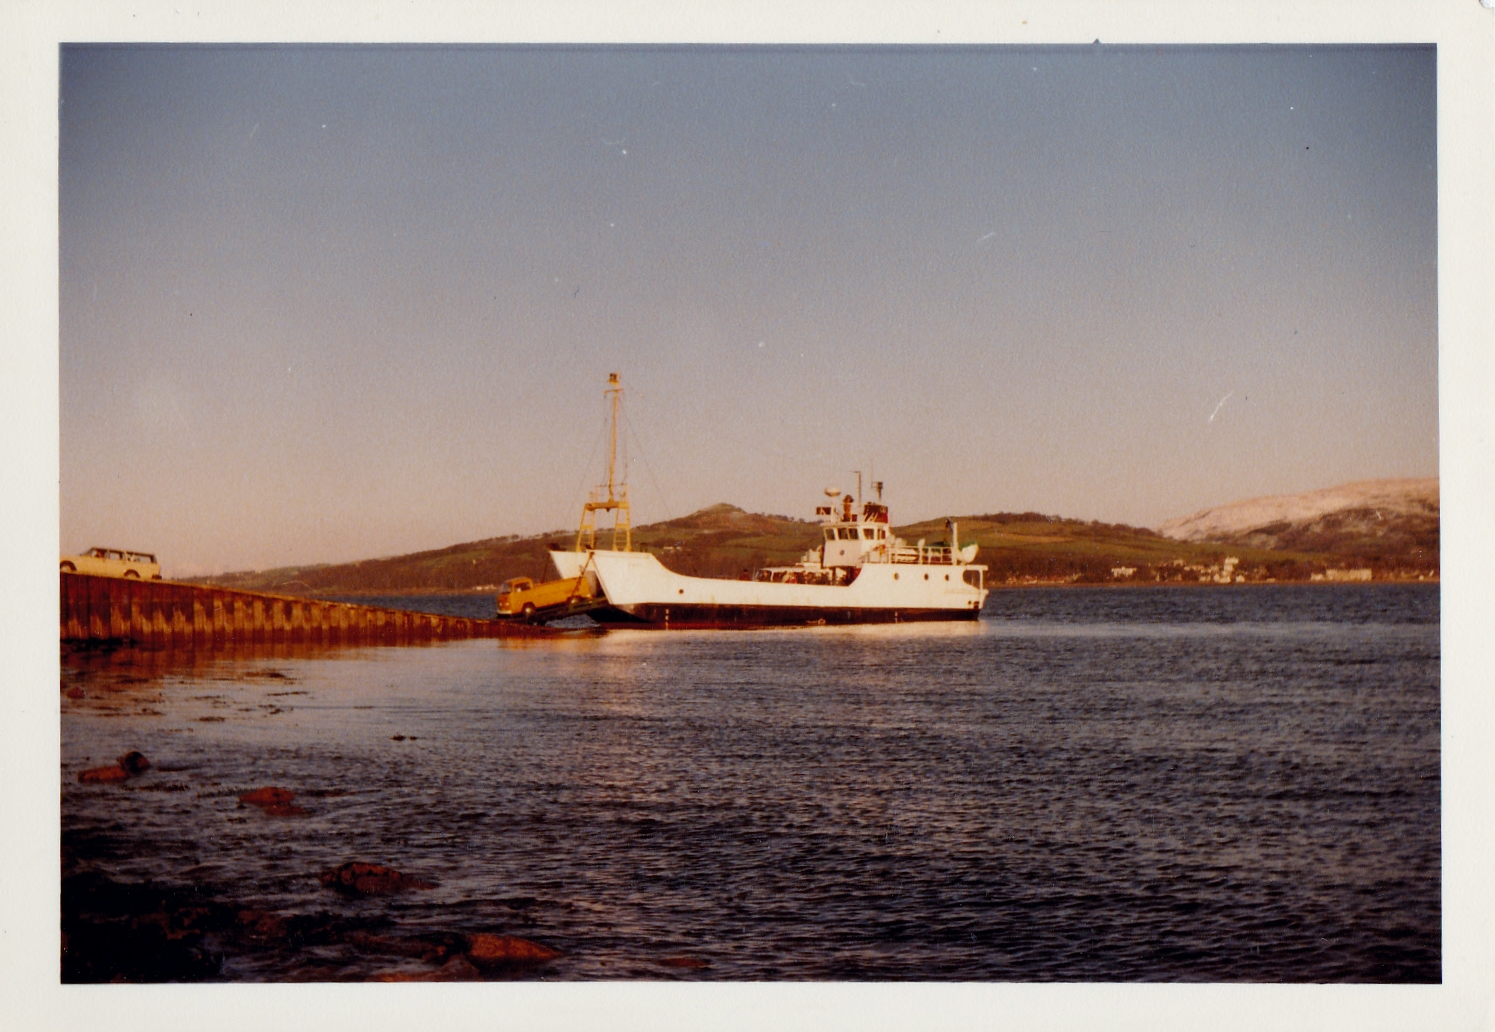 Coll at Cumbrae Slip (Jim Aikman Smith)